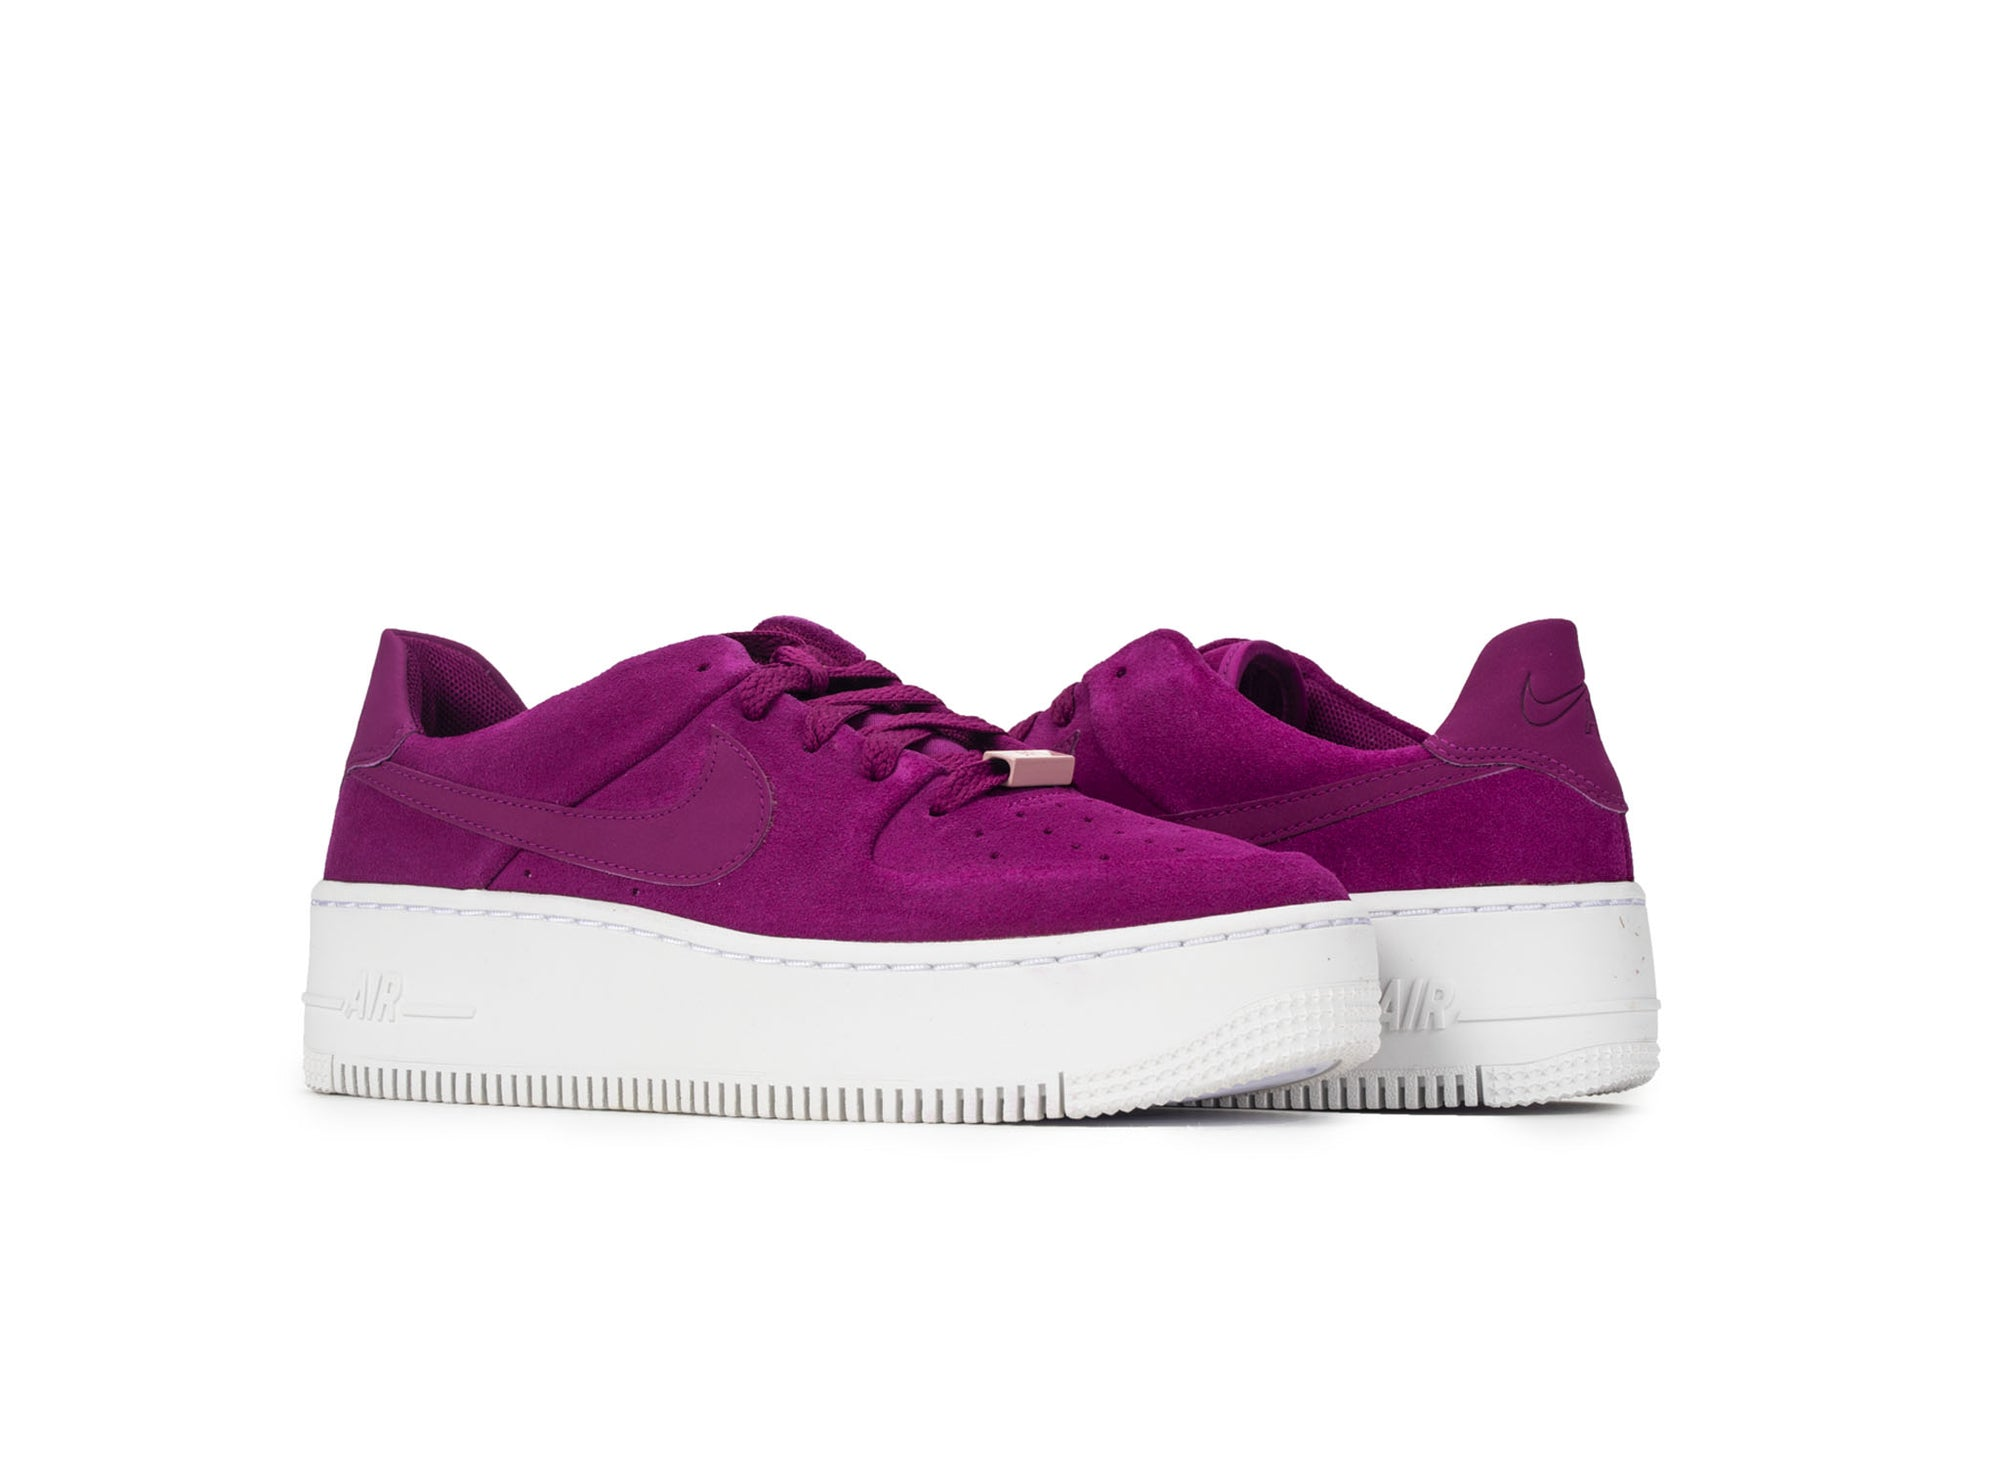 Brote Apéndice recuerda  NIKE AIR FORCE 1 SAGE LOW WOMENS - Oneness Boutique